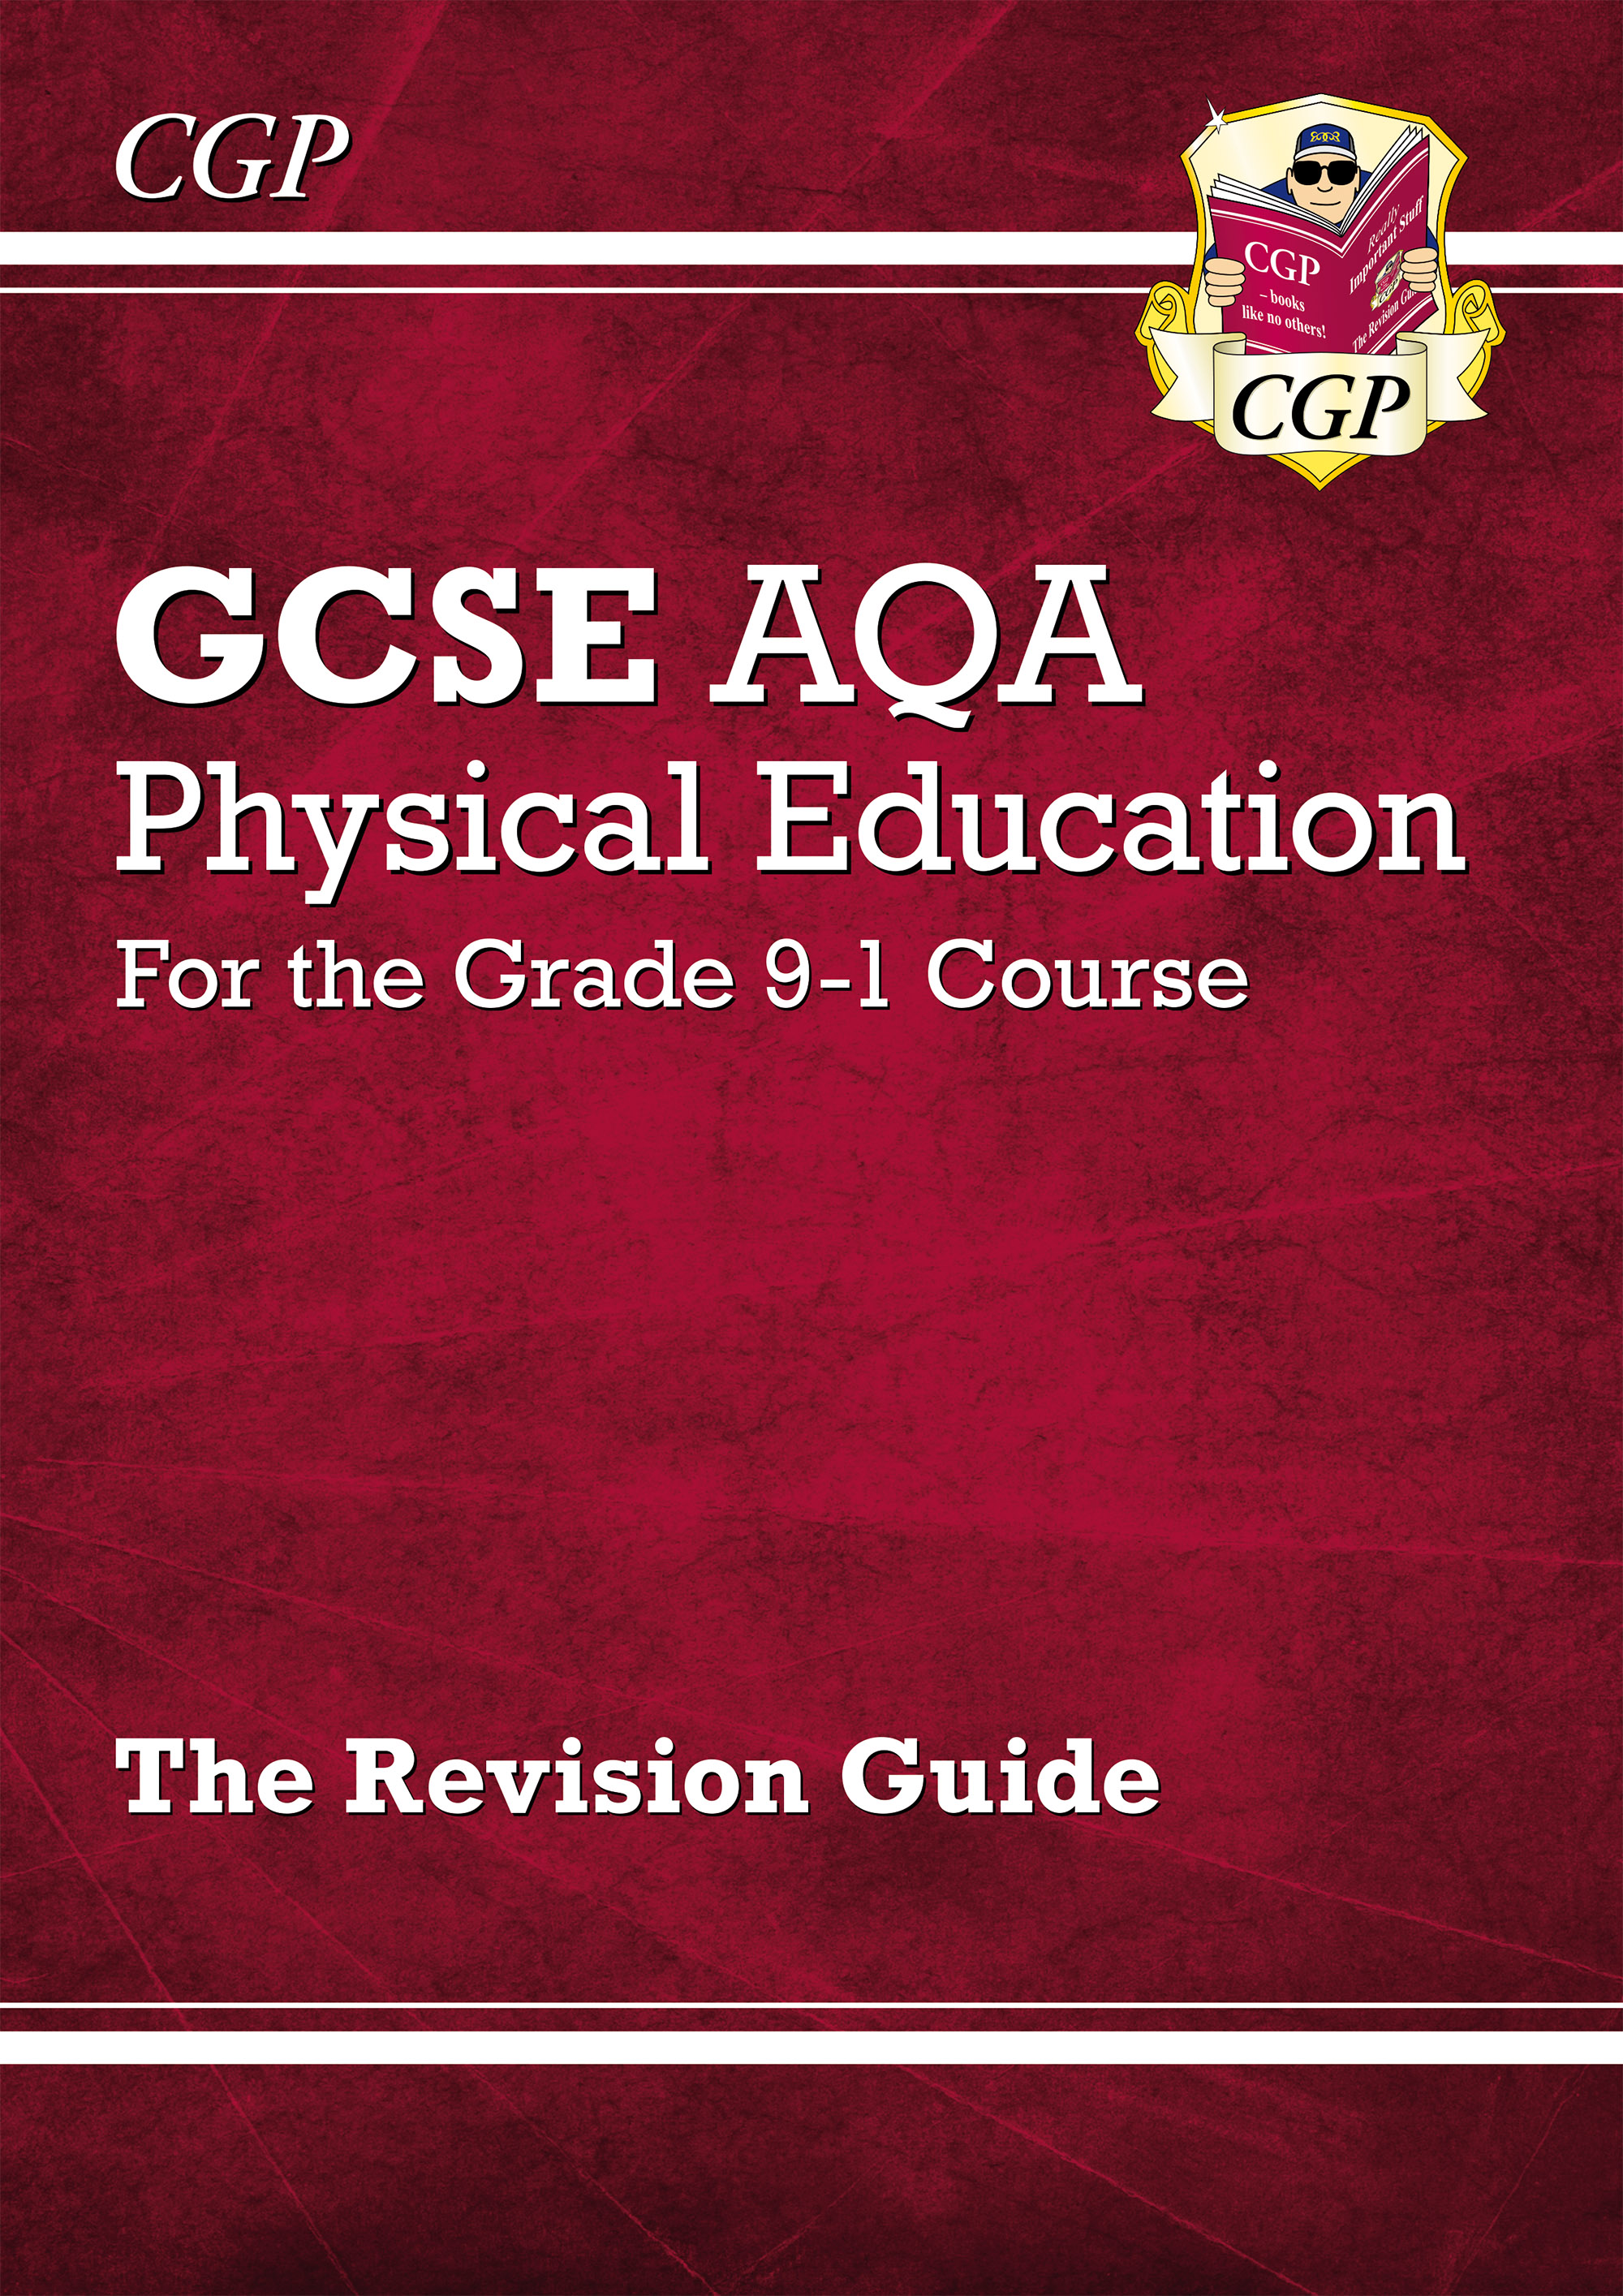 JAR41DK - New GCSE Physical Education AQA Revision Guide - for the Grade 9-1 Course